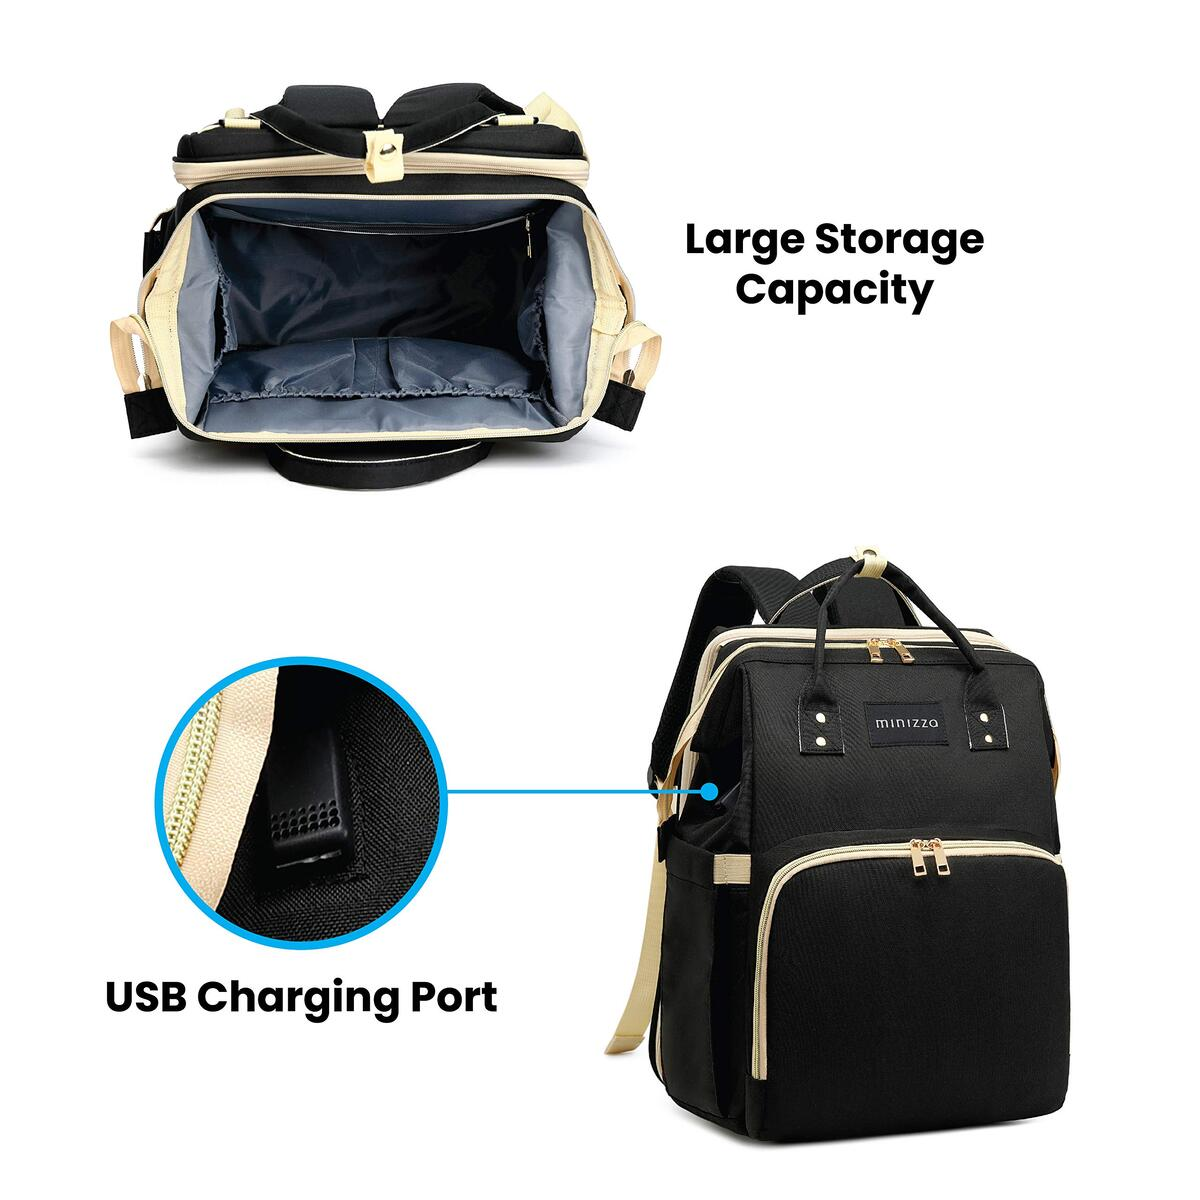 Diaper Bag Backpack with Foldable Changing Station, Travel Baby Bassinet Bed, Portable Crib, Built in USB Charging Port